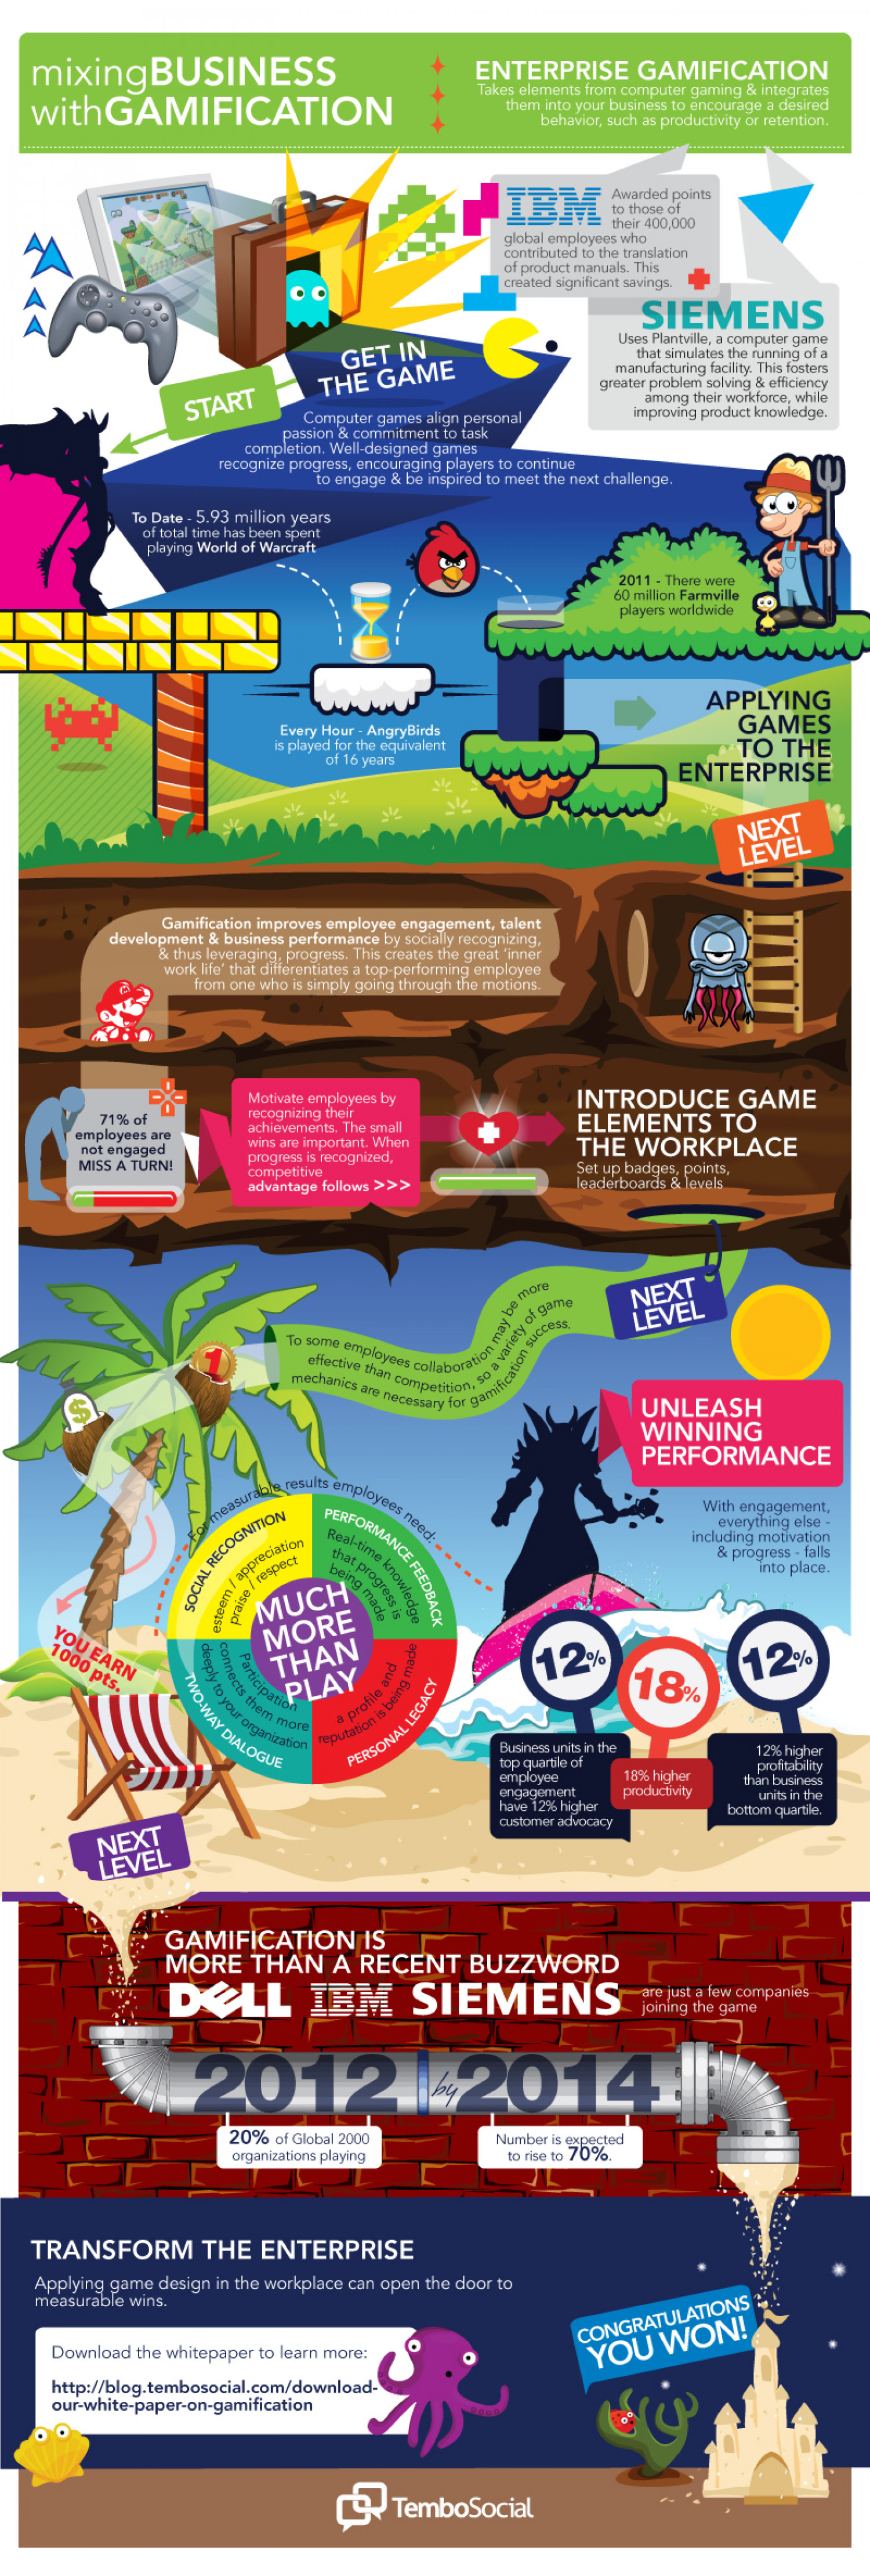 Mixing Business with Gamification Infographic